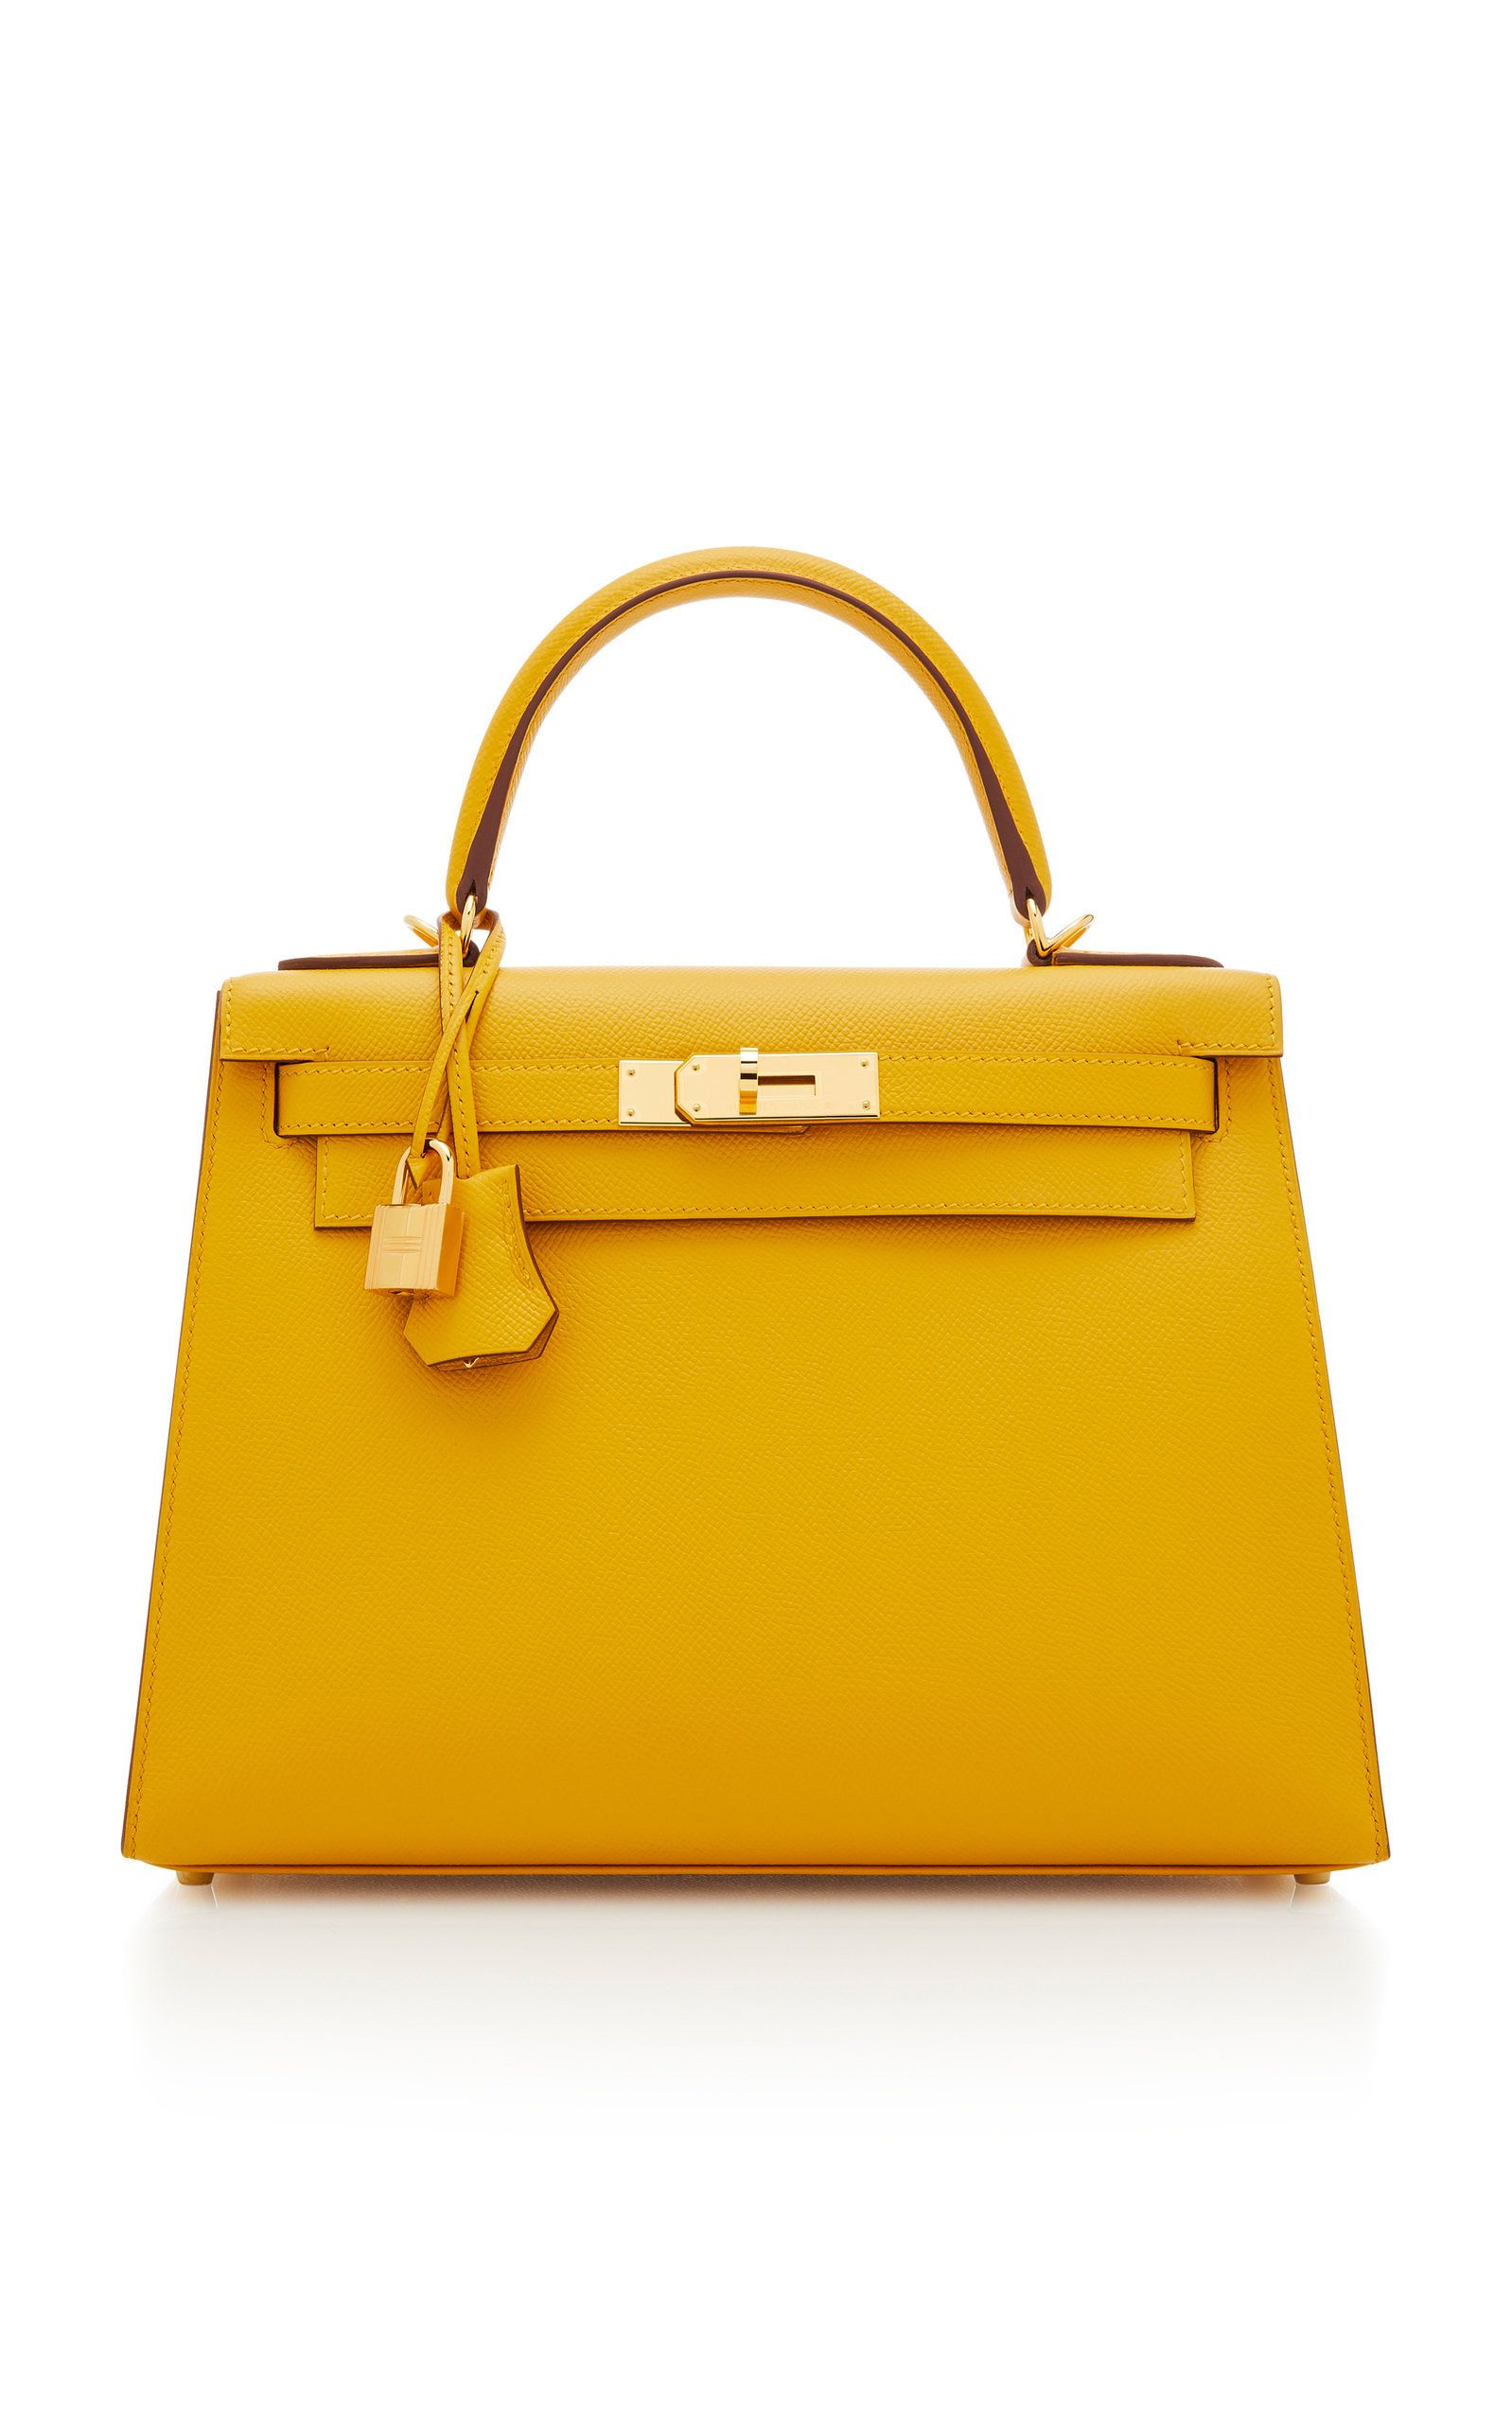 6a152386bbd3 Hermes Jaune Ambre Epsom Leather Sellier Kelly by HERMES VINTAGE for  Preorder on Moda Operandi